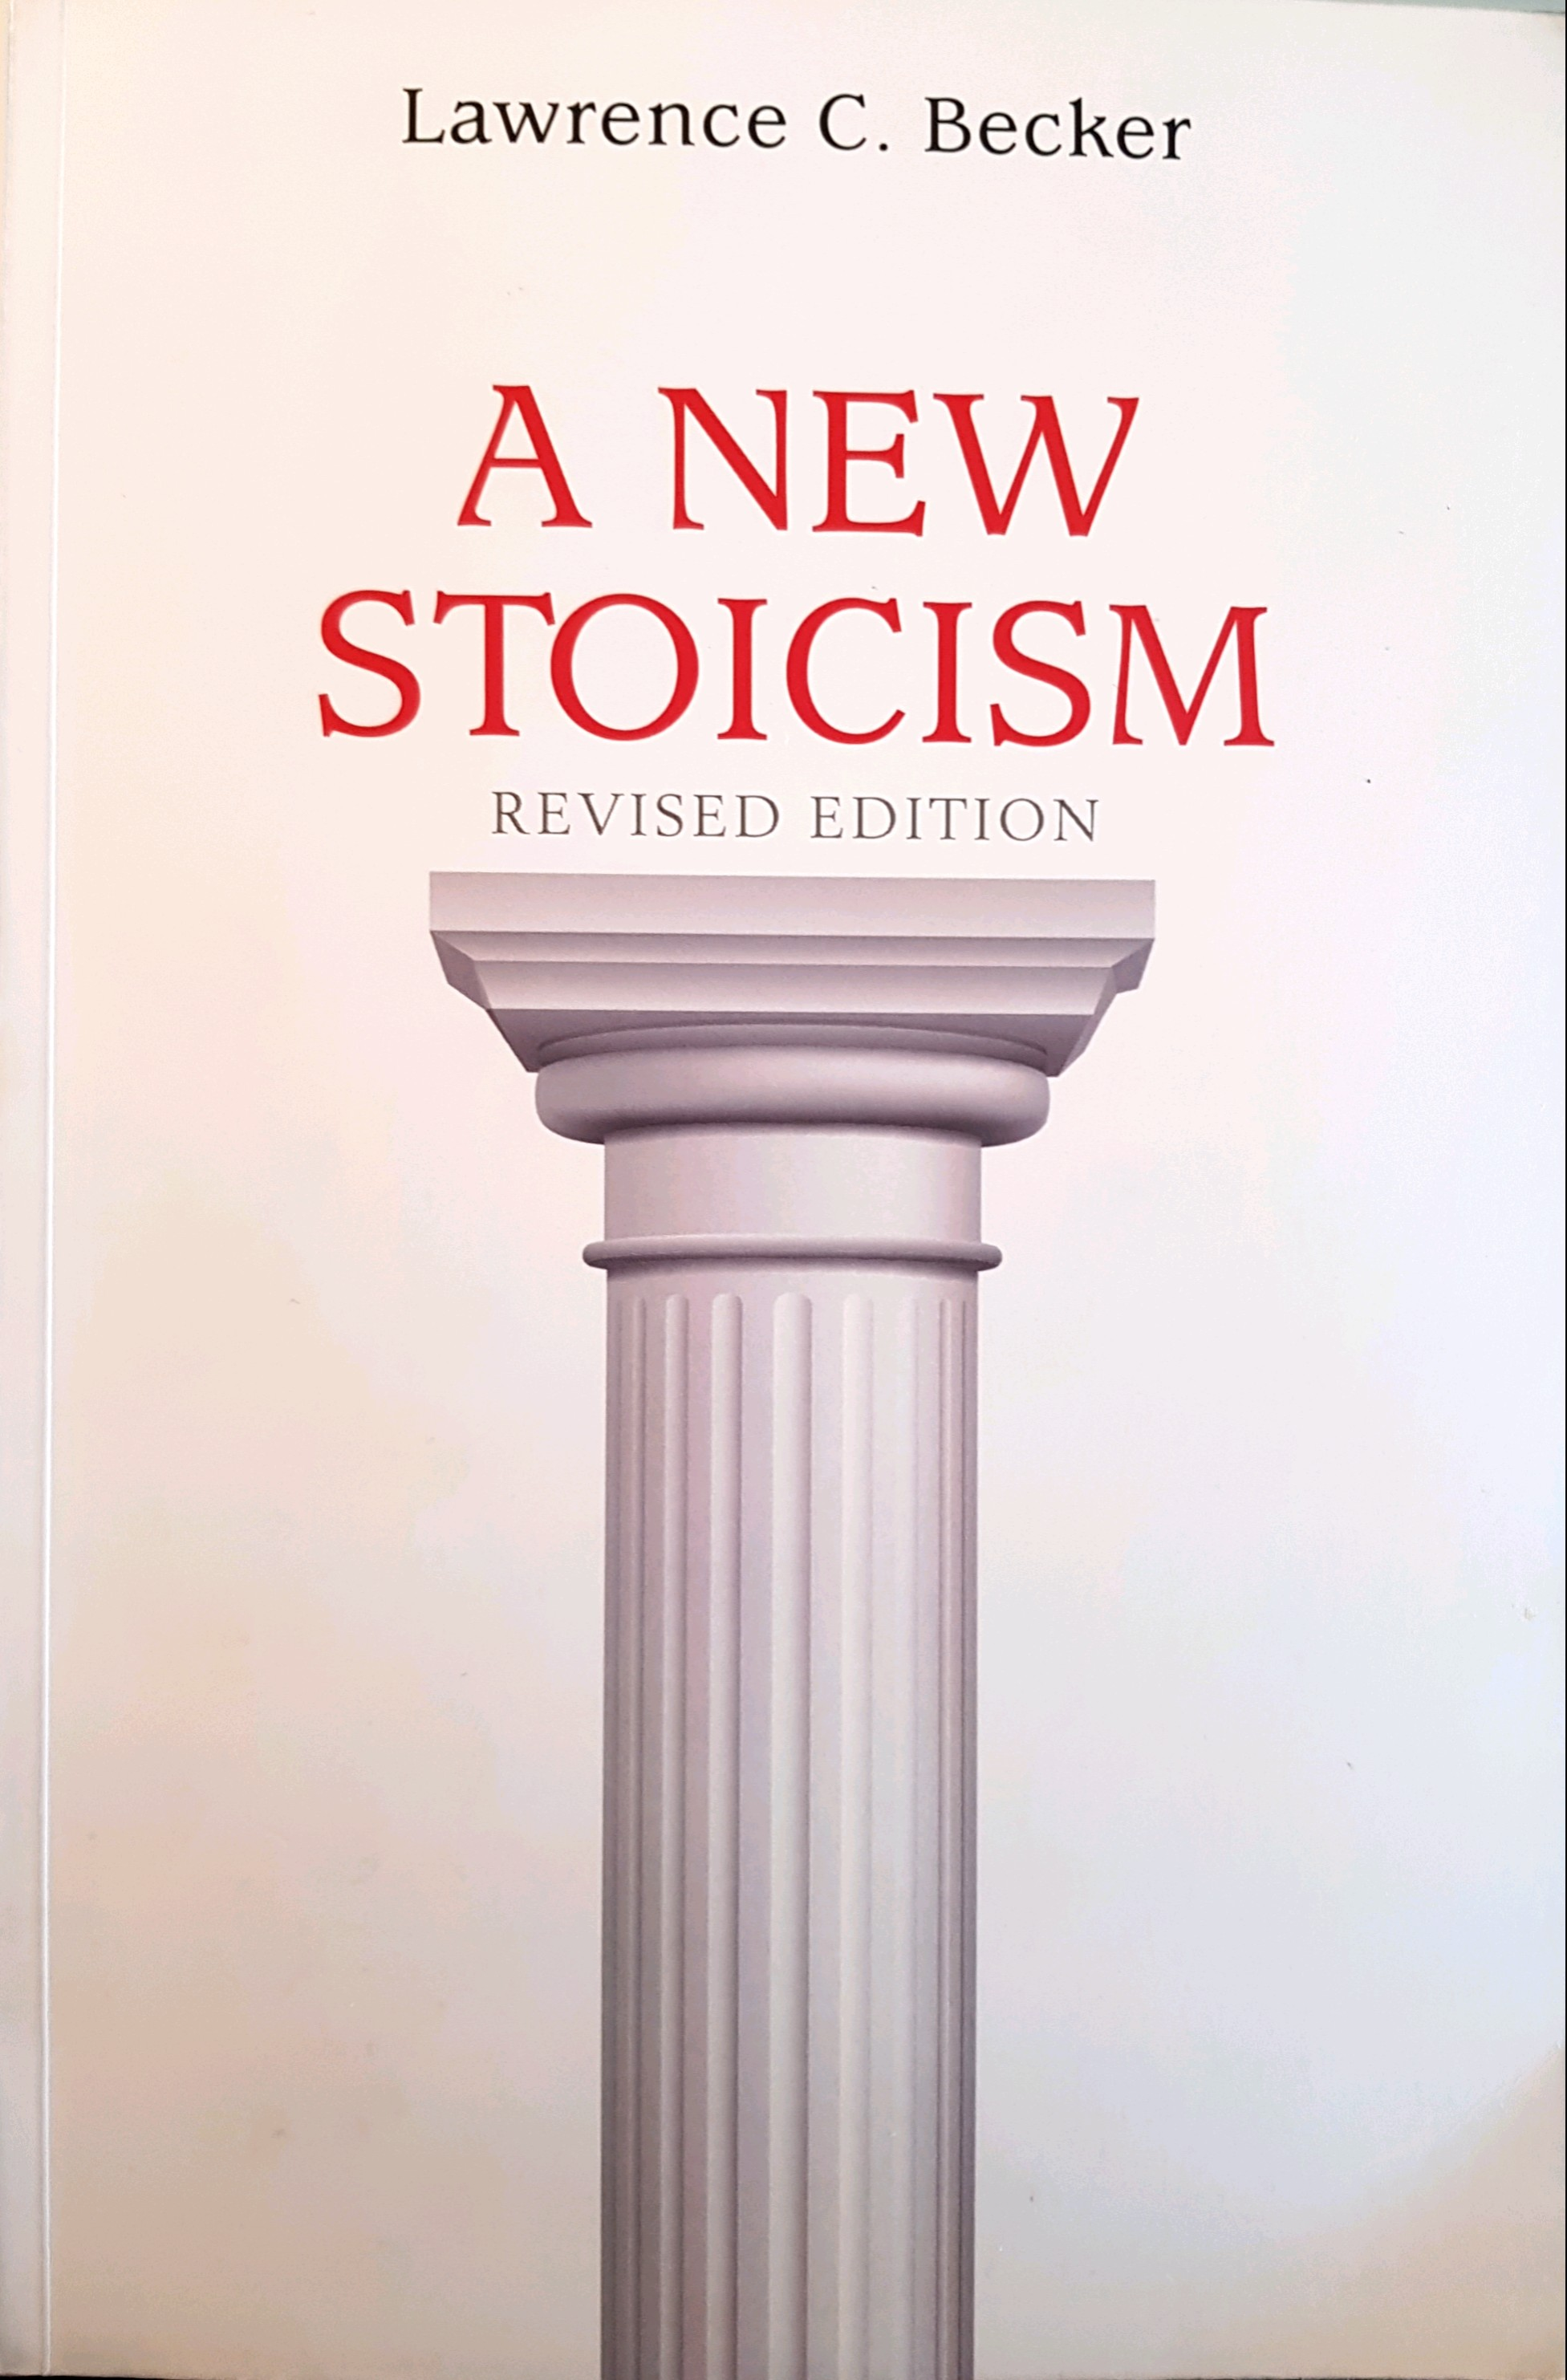 Stoicism Lawrence Becker